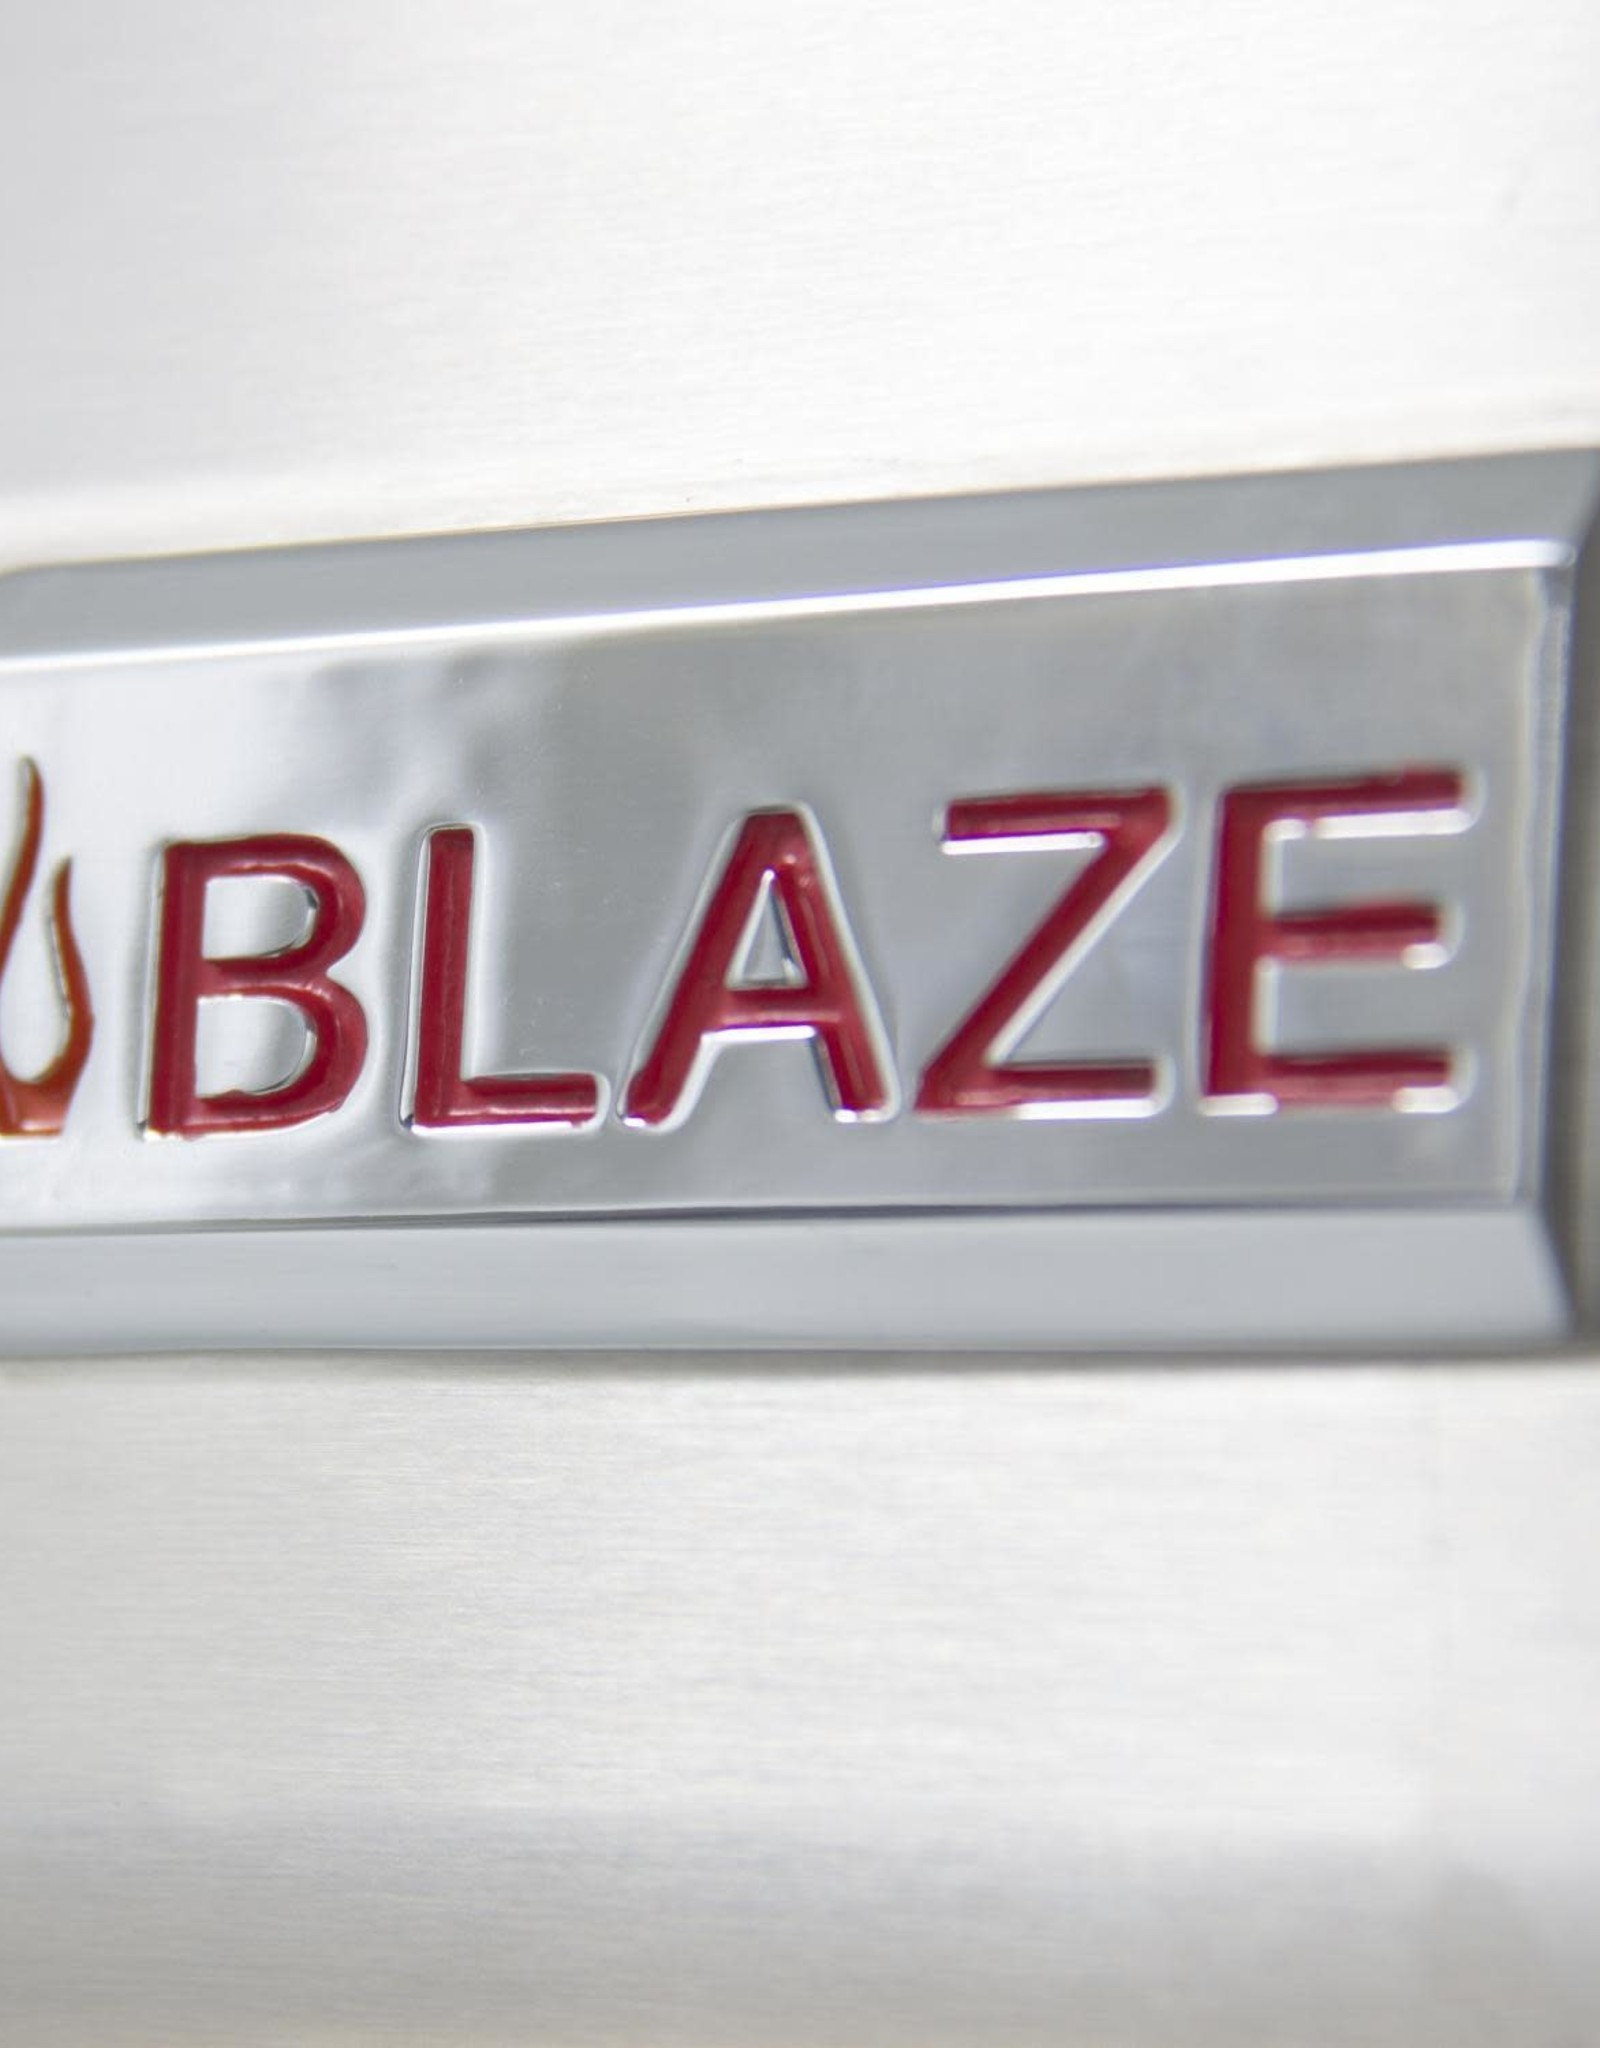 Blaze Outdoor Products Blaze 32-Inch Built-In Stainless Steel Charcoal Grill With Adjustable Charcoal Tray - BLZ-4-CHAR